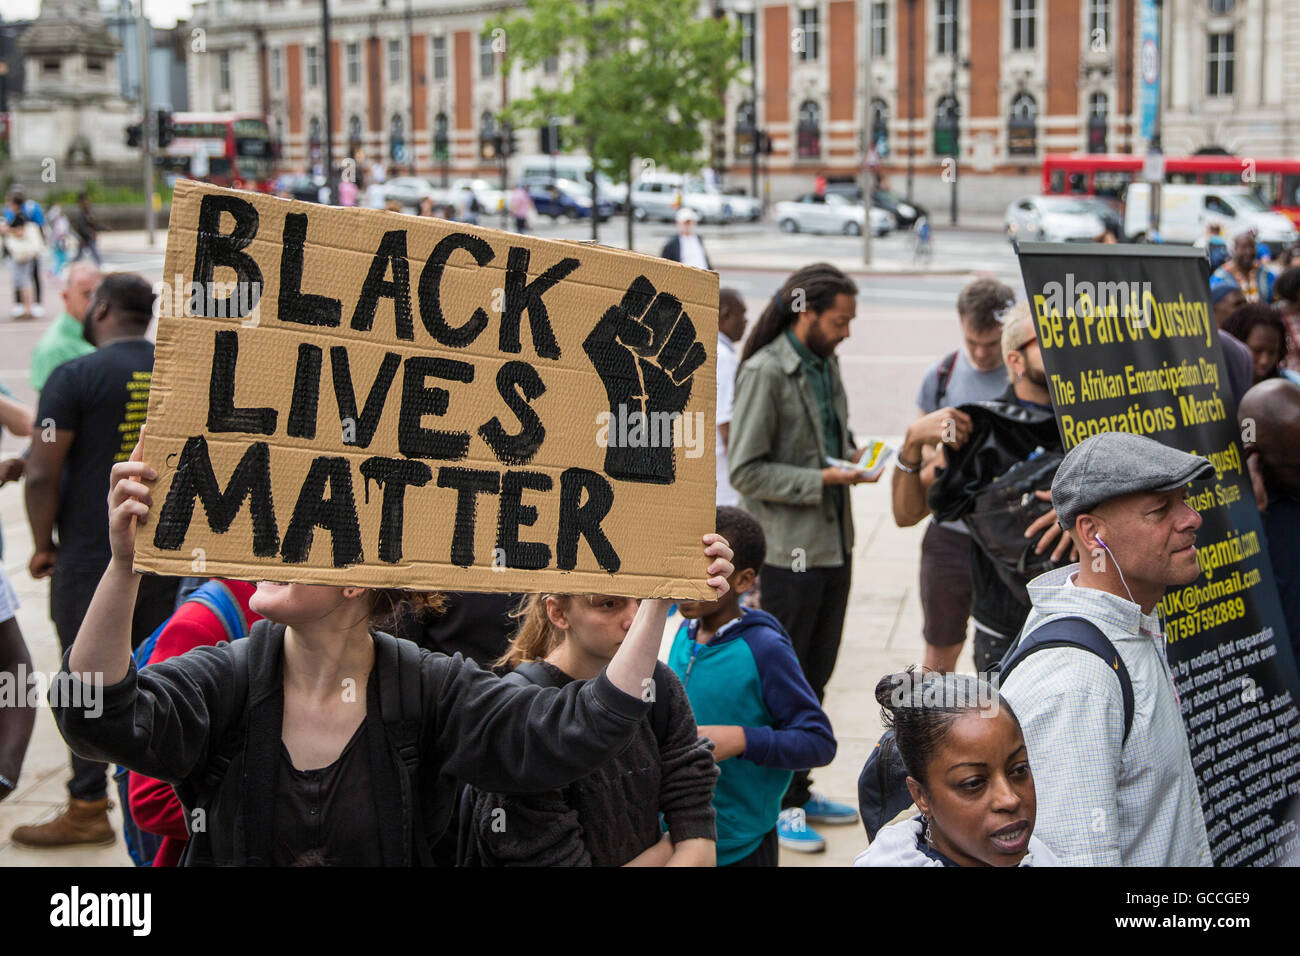 London, UK. 9th July, 2016. A campaigner holds a Black Lives Matter sign at a rally in Brixton in solidarity with - Stock Image